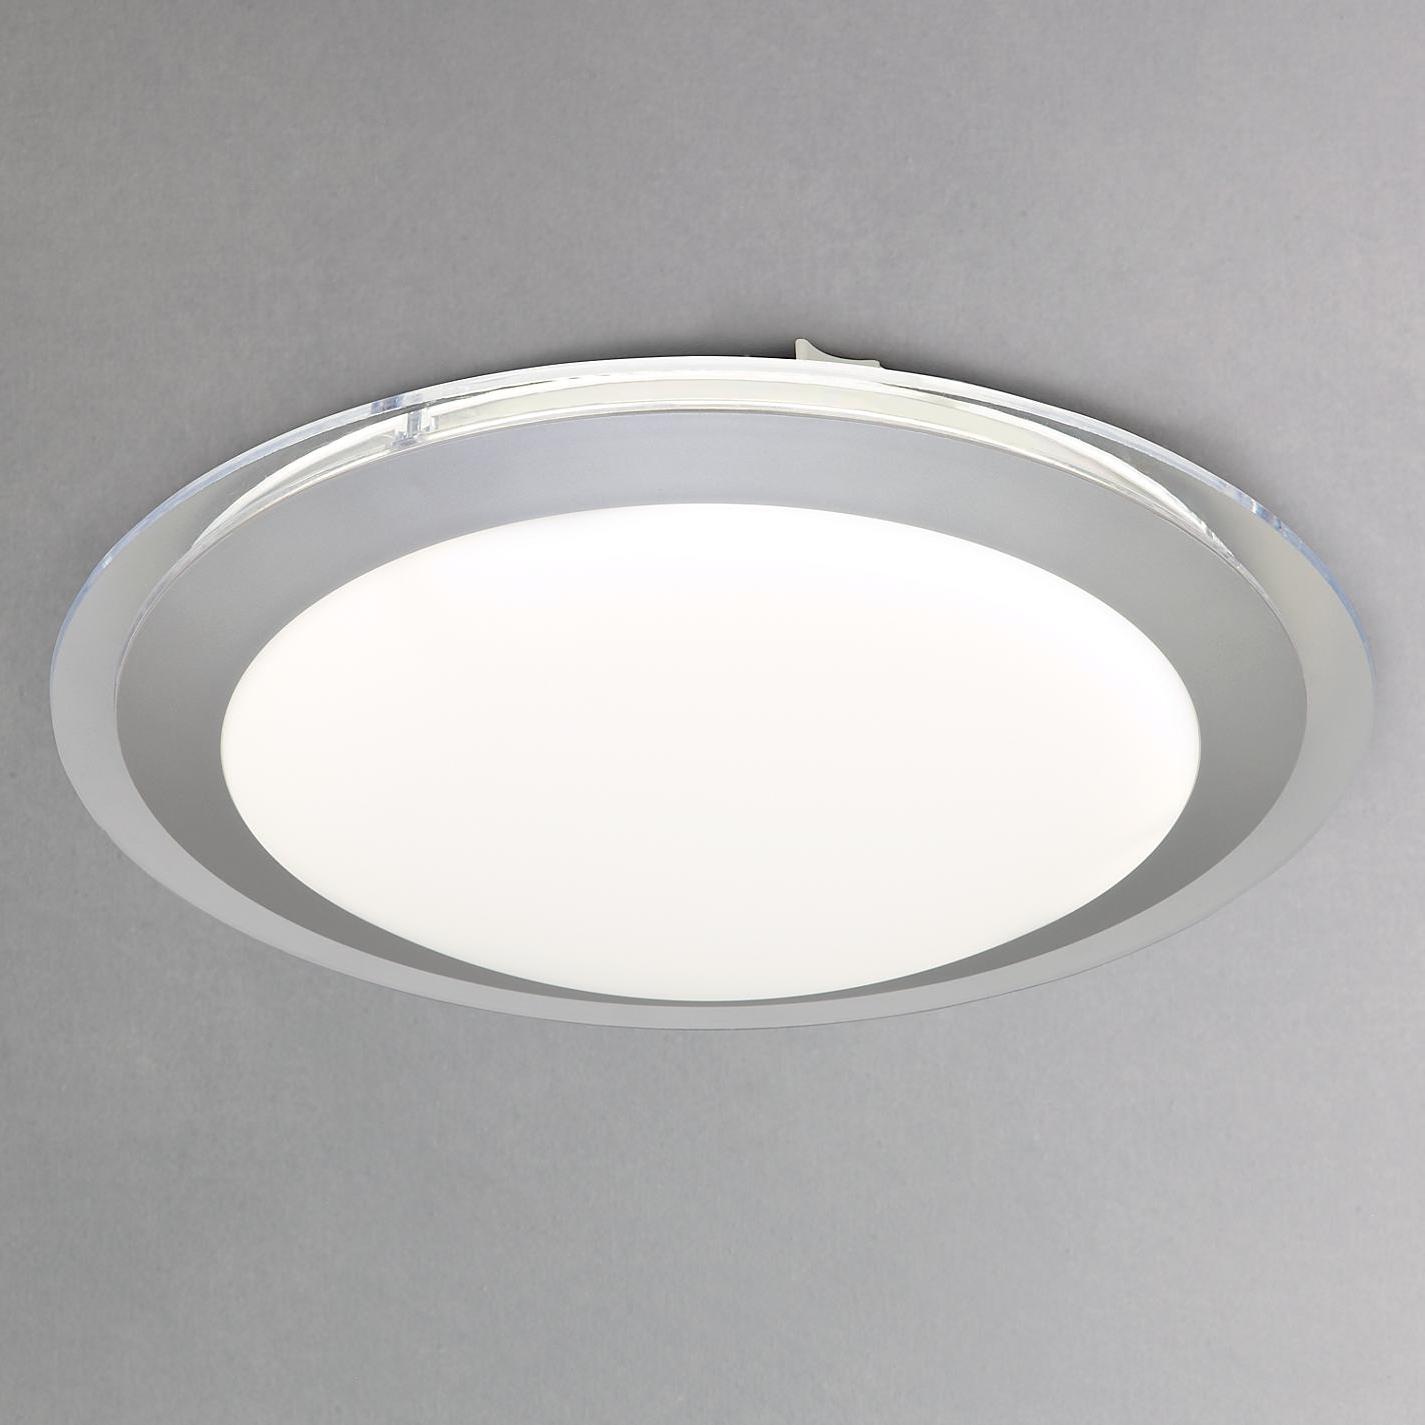 2019 John Lewis Bathroom Ceiling Lights Lighting Led Wall Uk Light With John Lewis Outdoor Ceiling Lights (Gallery 8 of 20)